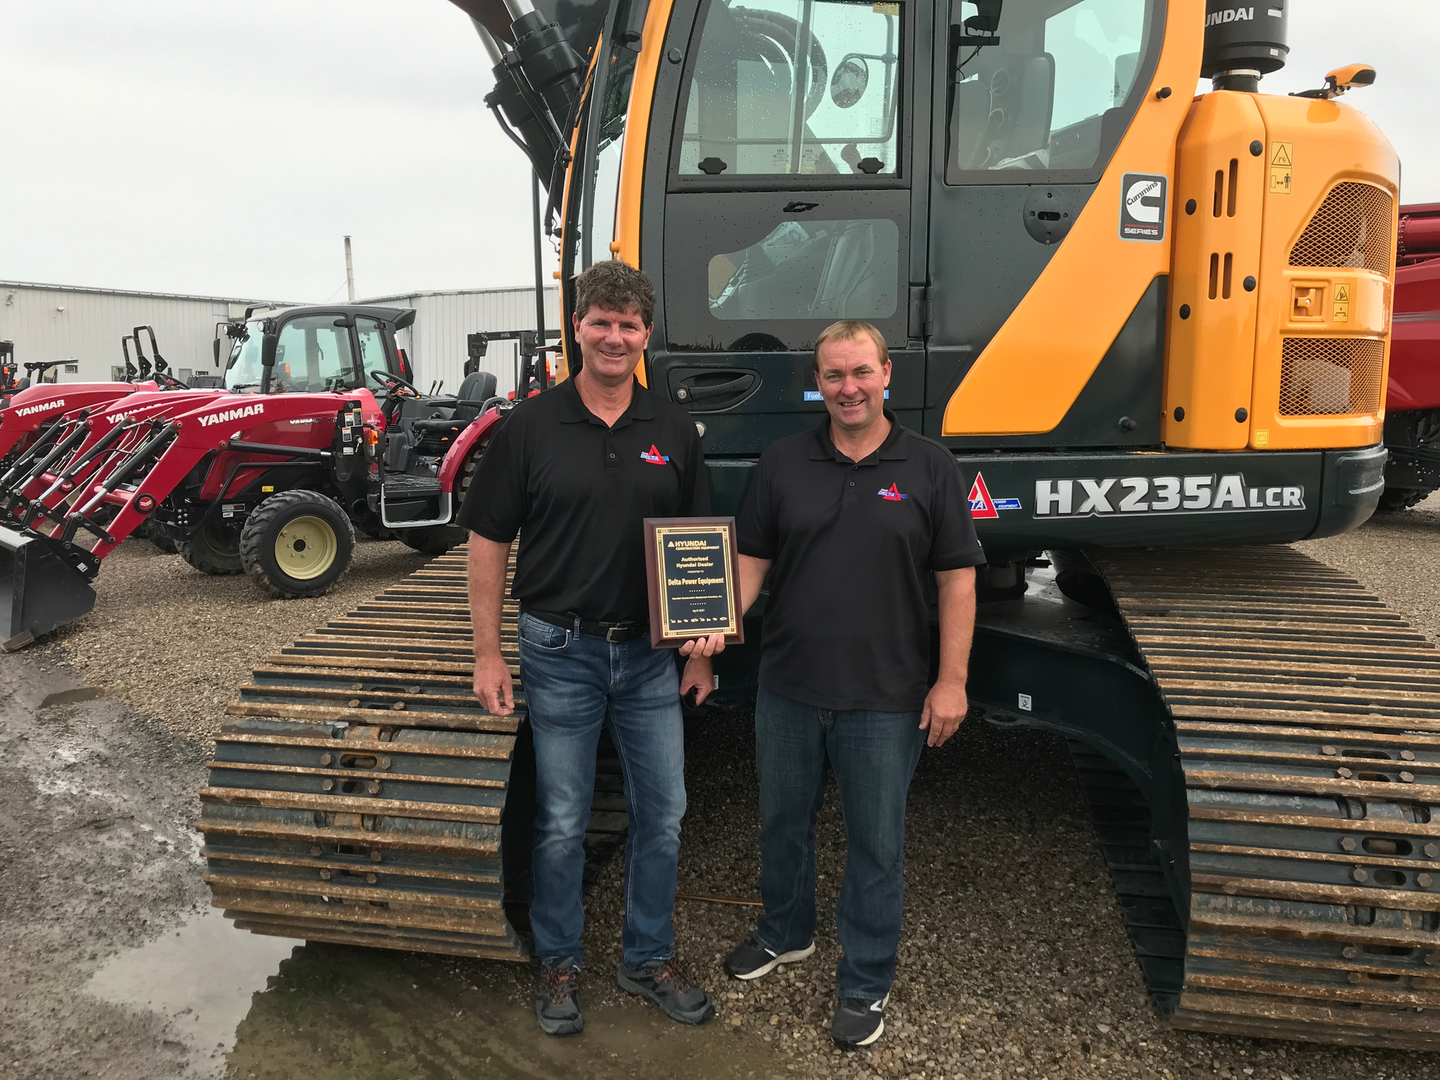 Left to Right: Cameron Currie, general sales manager and Brad Blain, construction sales manager, Delta Power Equipment.